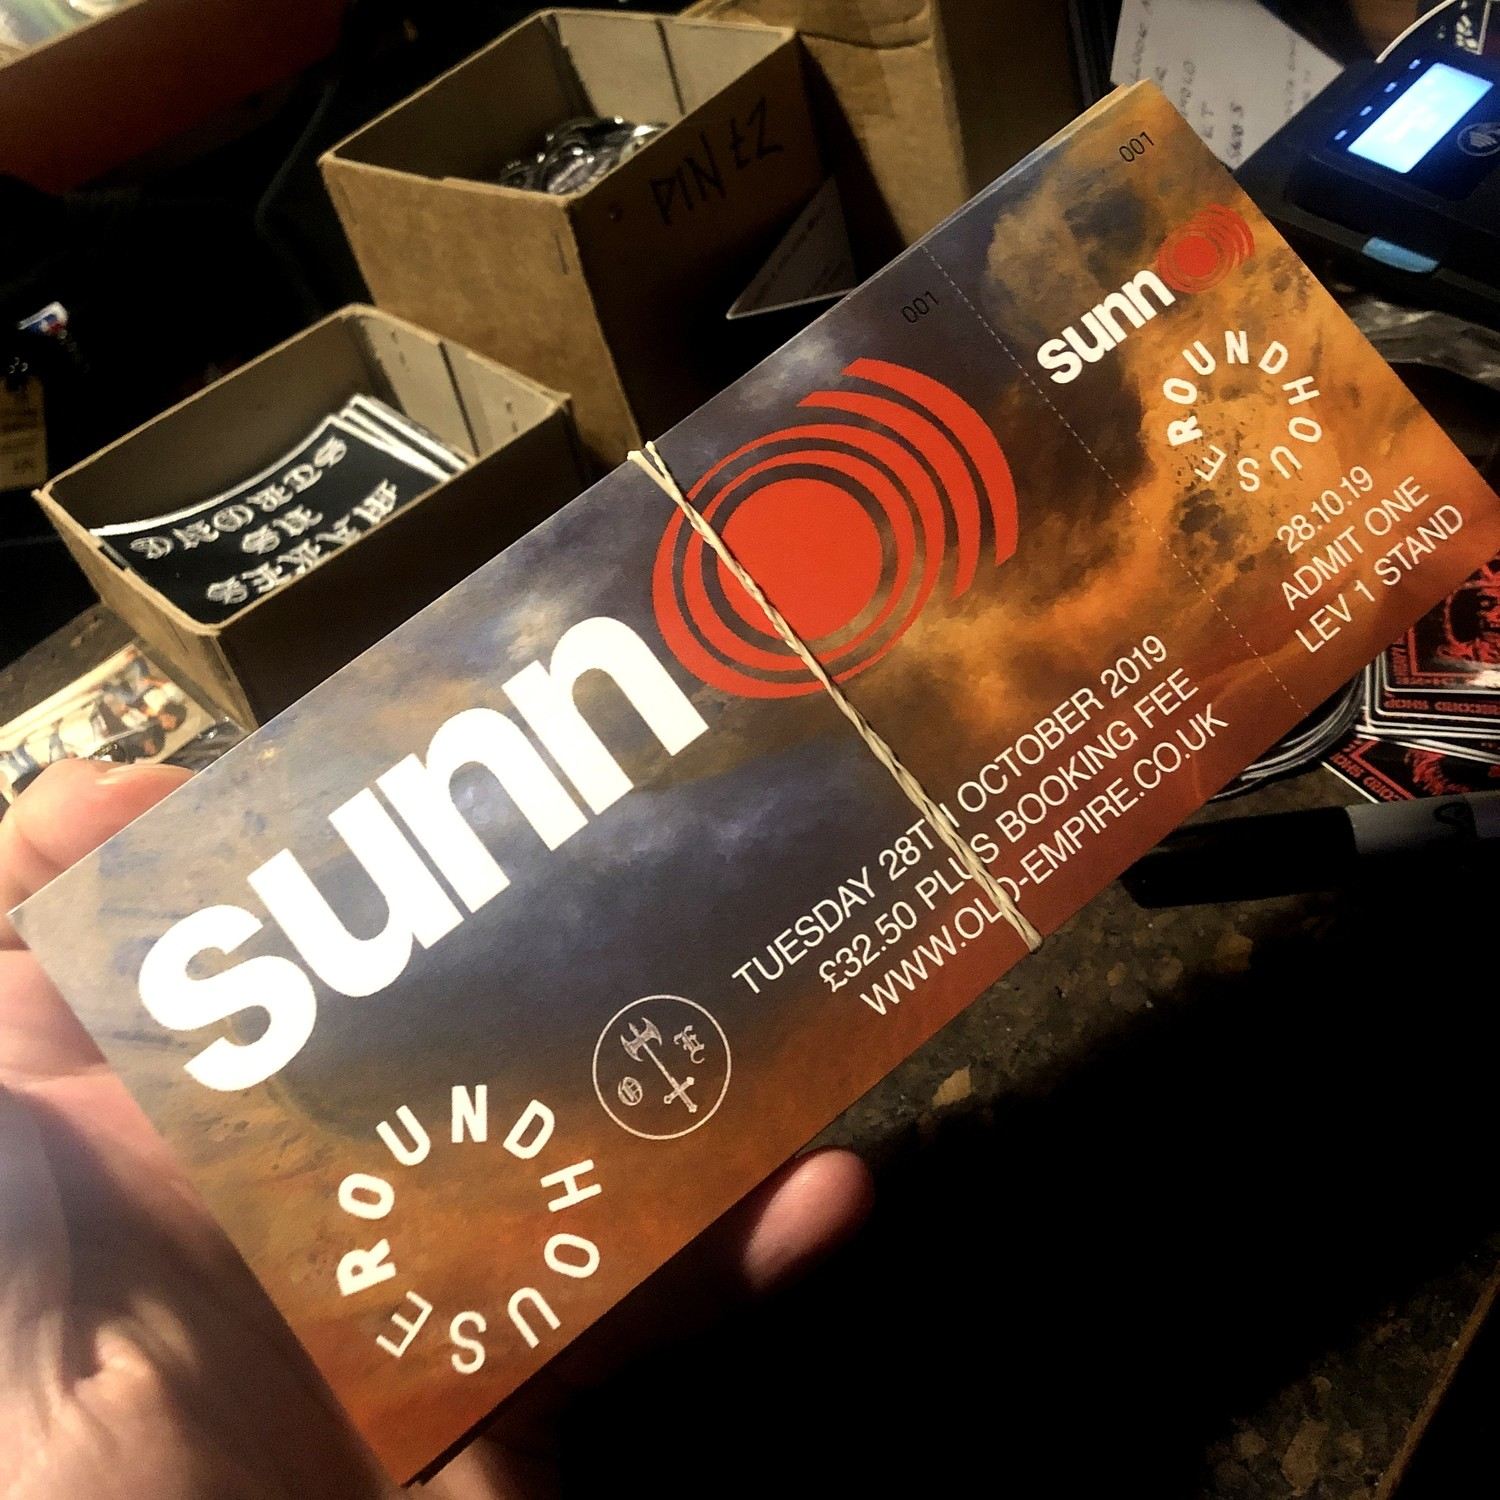 Sunn O))) ticket - live at Roundhouse - London Oct 28th 2019